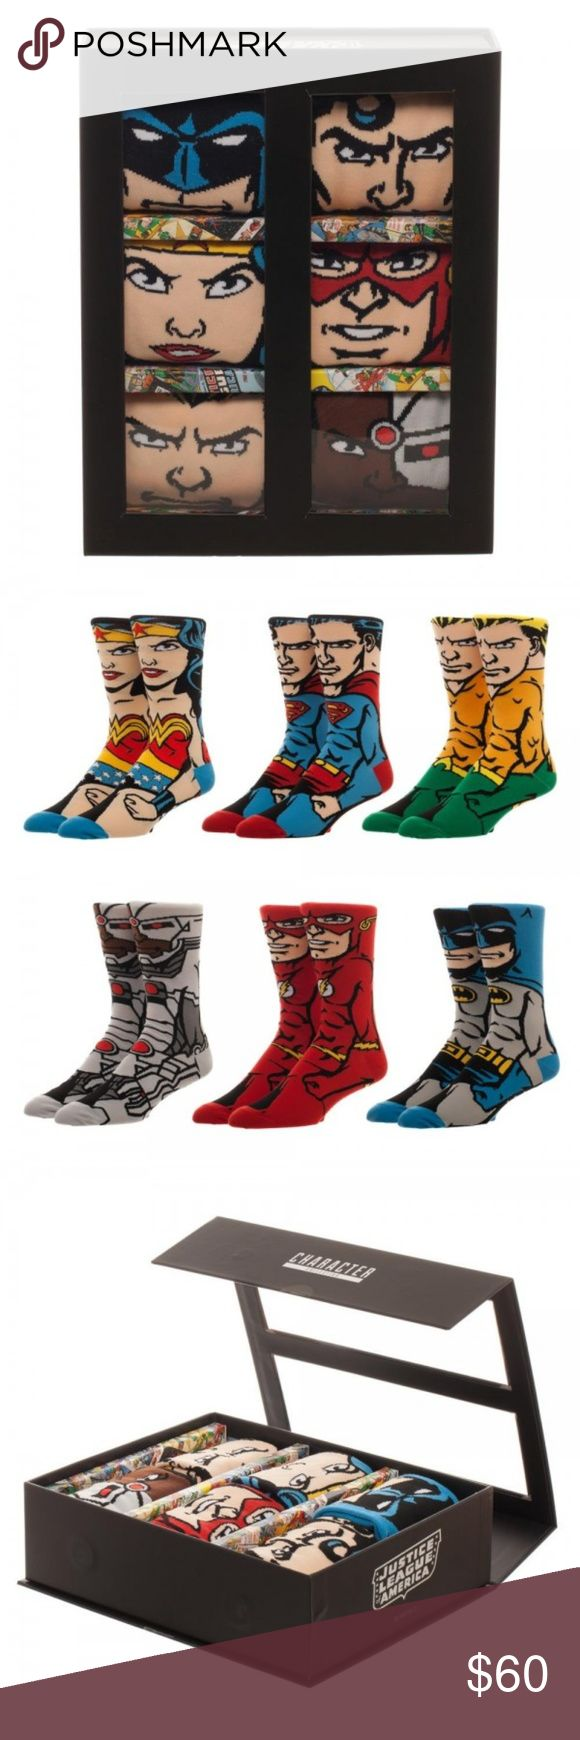 DC Comics Justice League Character Sock Set Men's Officially Licensed Justice League Character Gift Set of 6 Men's Crew Socks!  You get:  Superman, Batman, Wonder Woman, Aquaman, Cyborg, and The Flash!  Theme:  DC Comics / Justice League - Officially Licensed Pattern:  Justice League 360 / Whole Body Socks (Front and Back) Style:  Men's Casual / Crew Socks Sock size:  Adult - One Size Fits Most   Material:  96% Polyester, 2% Spandex, 2% Other Fiber Brand: Bioworld  Intended for Ages 14 and…